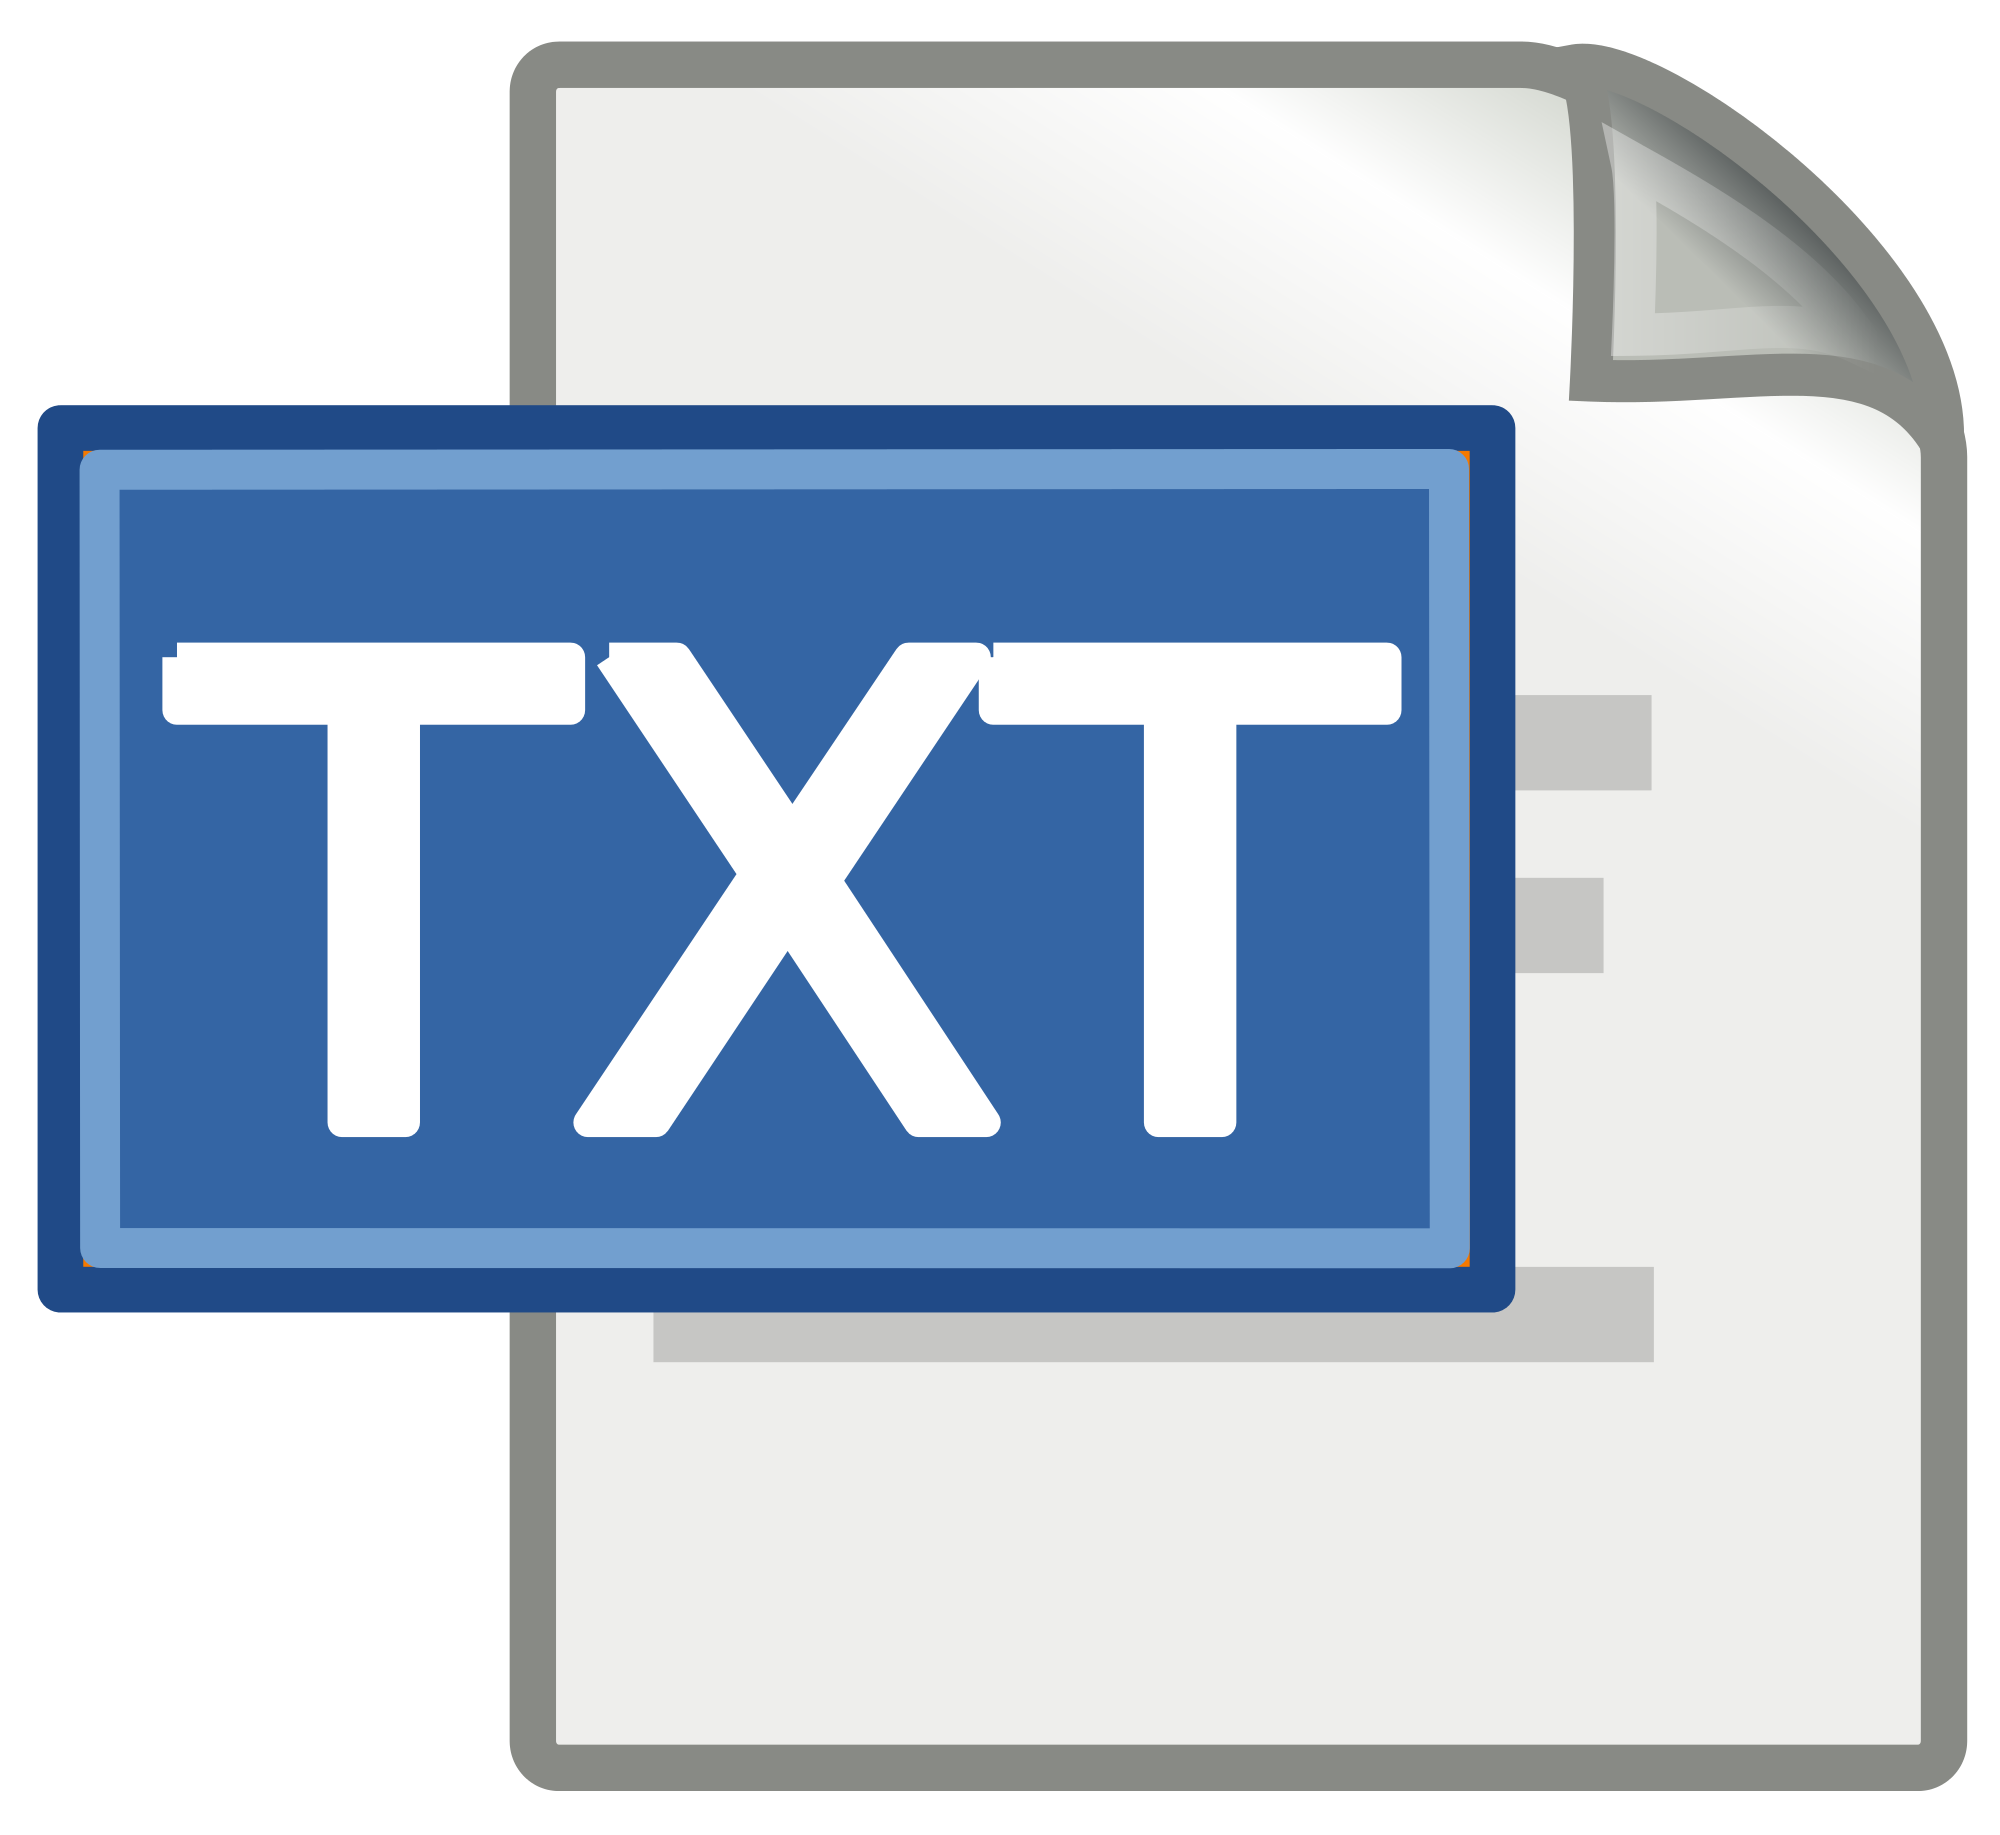 Png extension viewer. File text txt svg